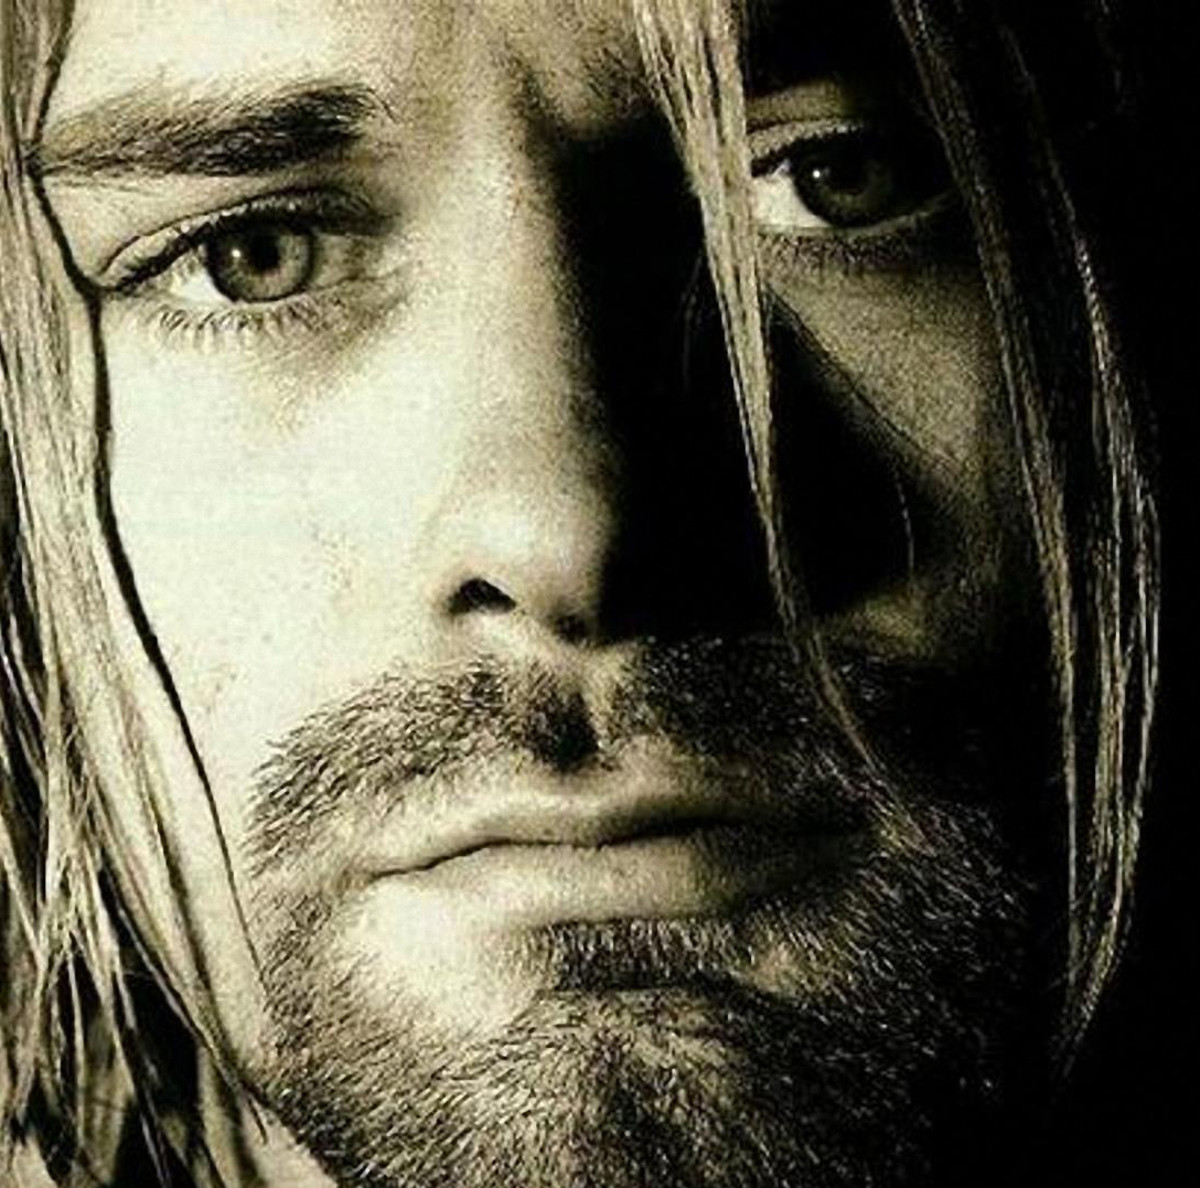 Kurt Cobain from Nirvana, the artist who defines '90s music for many.